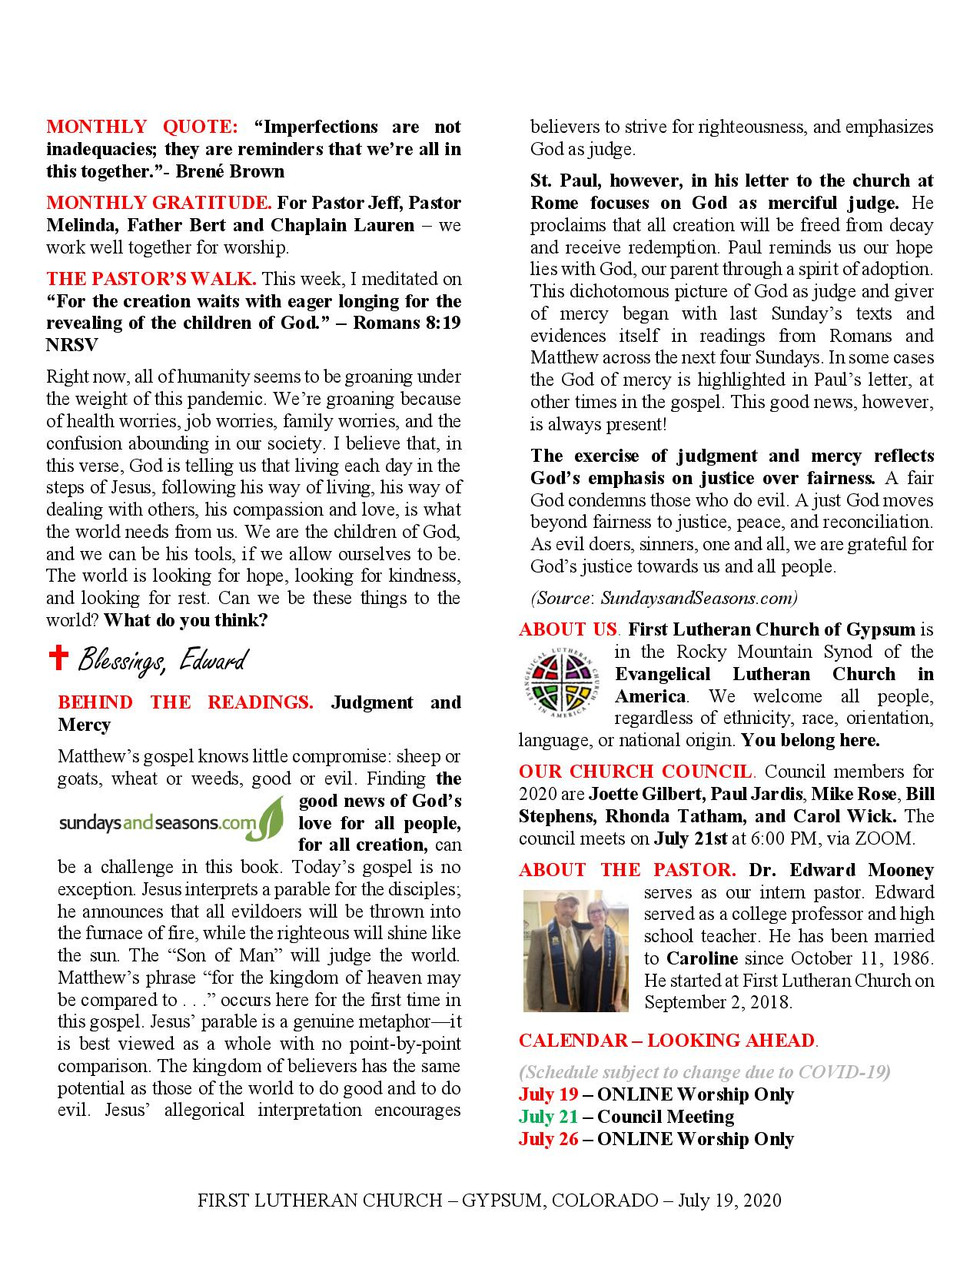 Newsletter, July 19, 2020, page 2